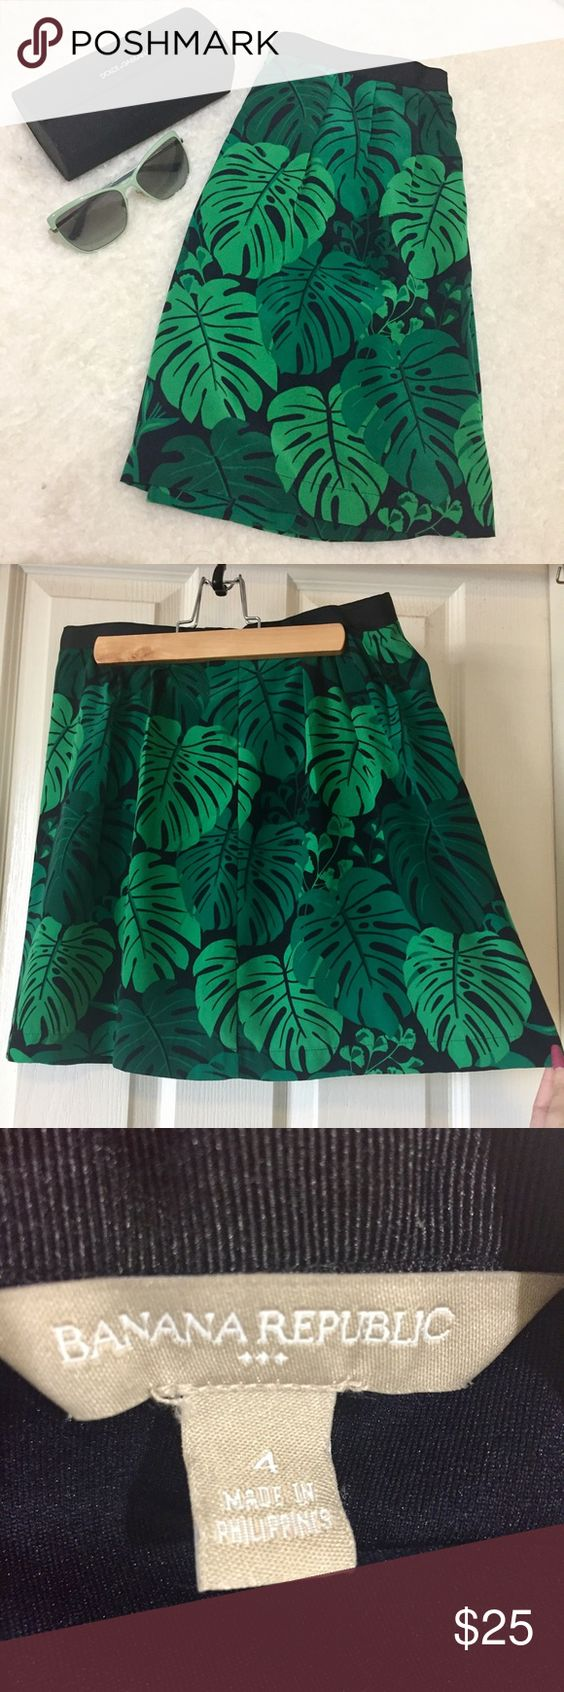 Banana Republic Skirt, Green, size 4 NWOT. Banana Republic, green and black, leaf print skirt. NWOT. Size 4. Thin skirt with lining and a zip up back. Adorable for spring and summer! Length: 16.5 inches. Banana Republic Skirts